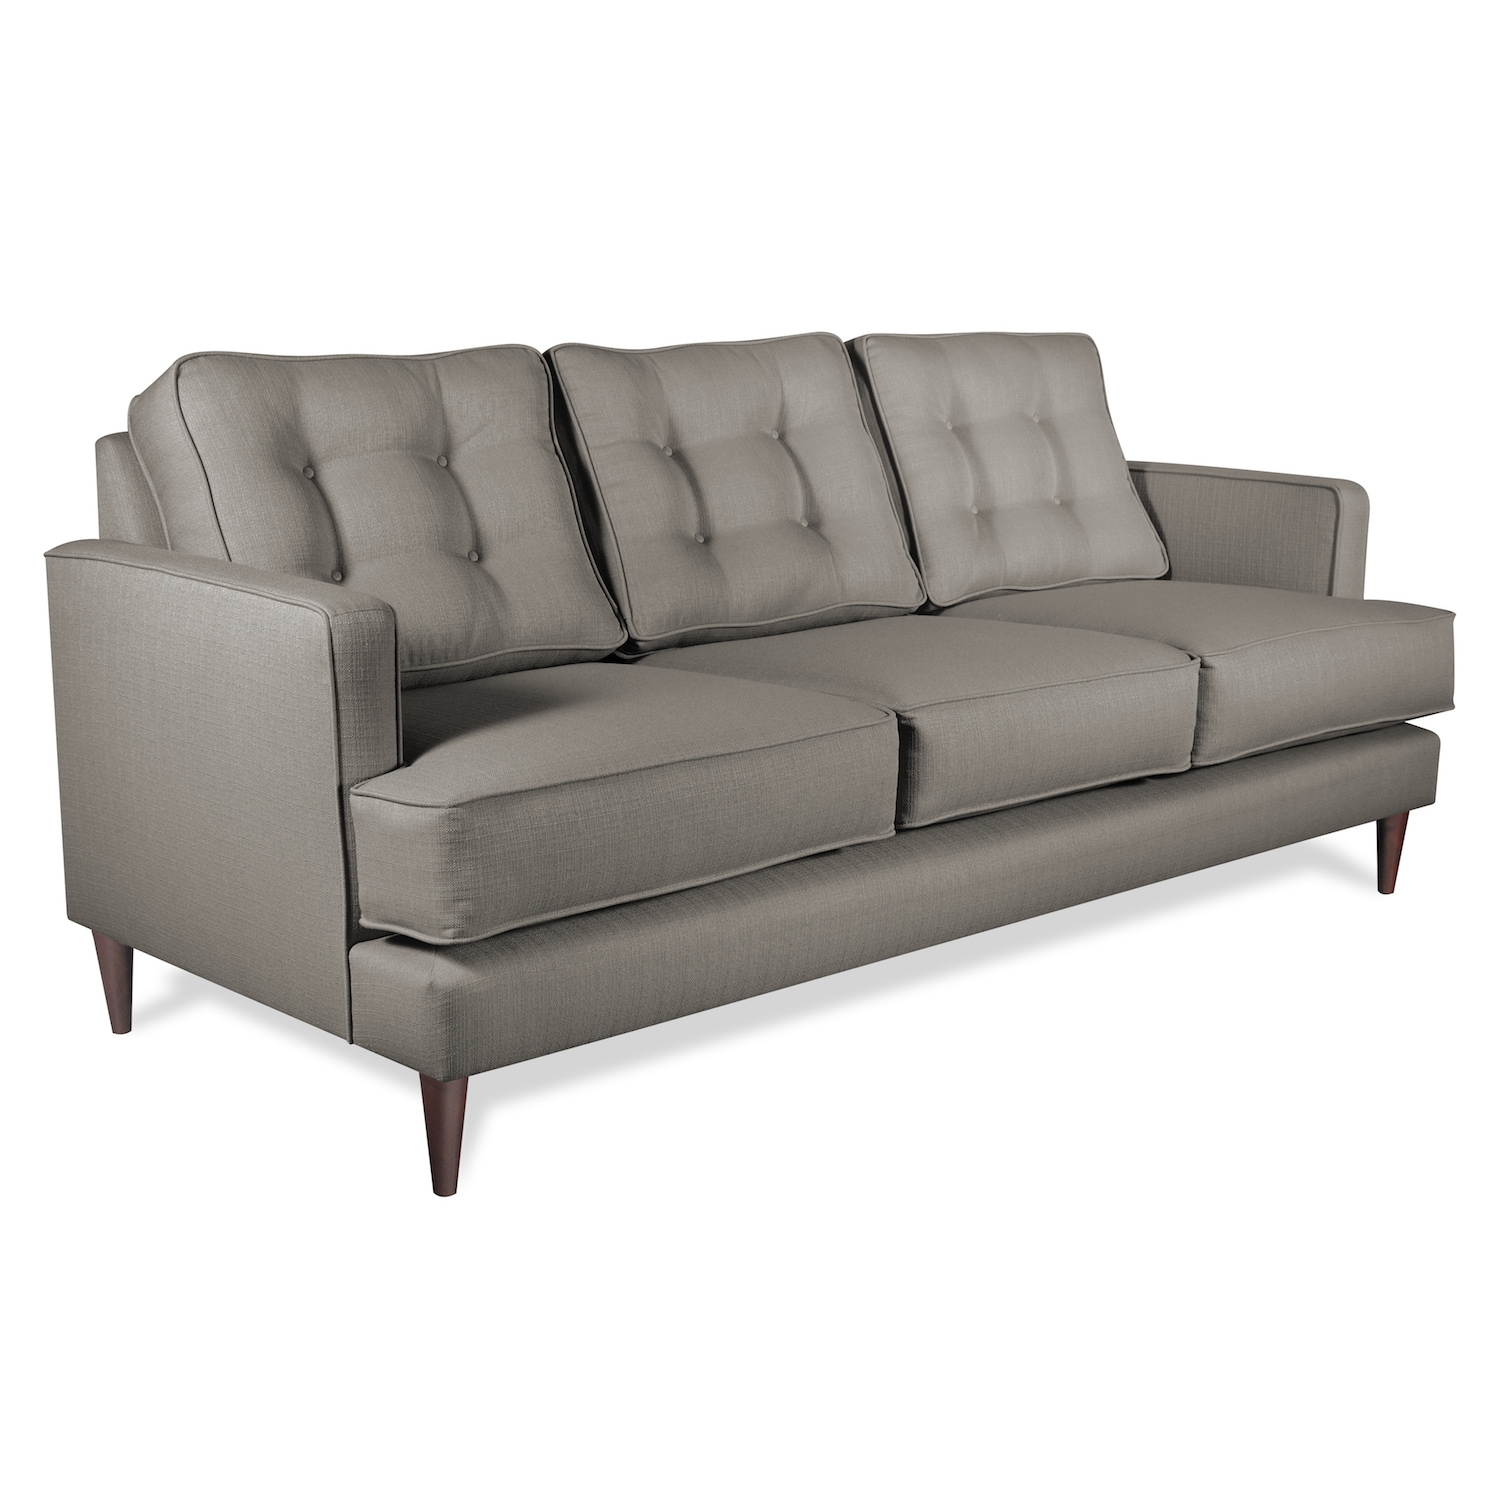 Huntington Industries Dana Mid Century Eco Friendly Sofa